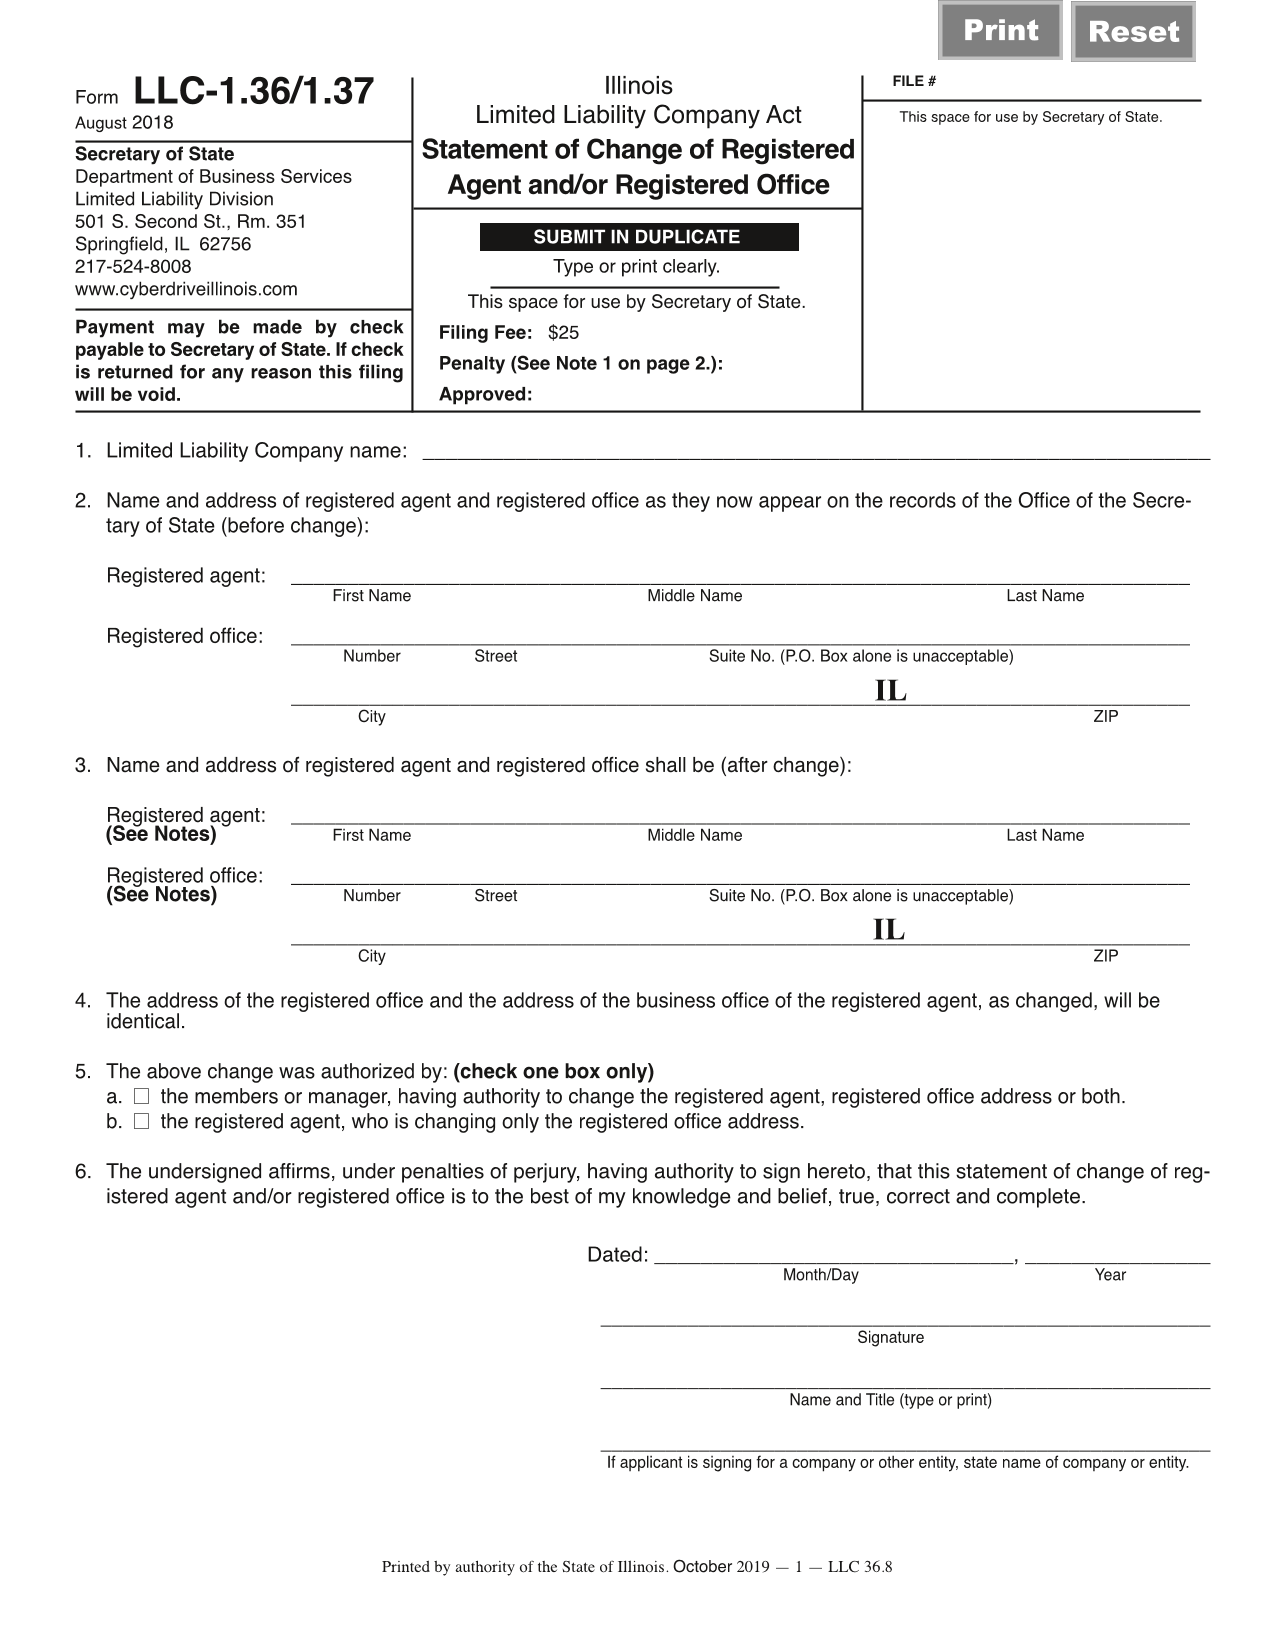 illinois-llc-statement-of-change-of-registered-agent